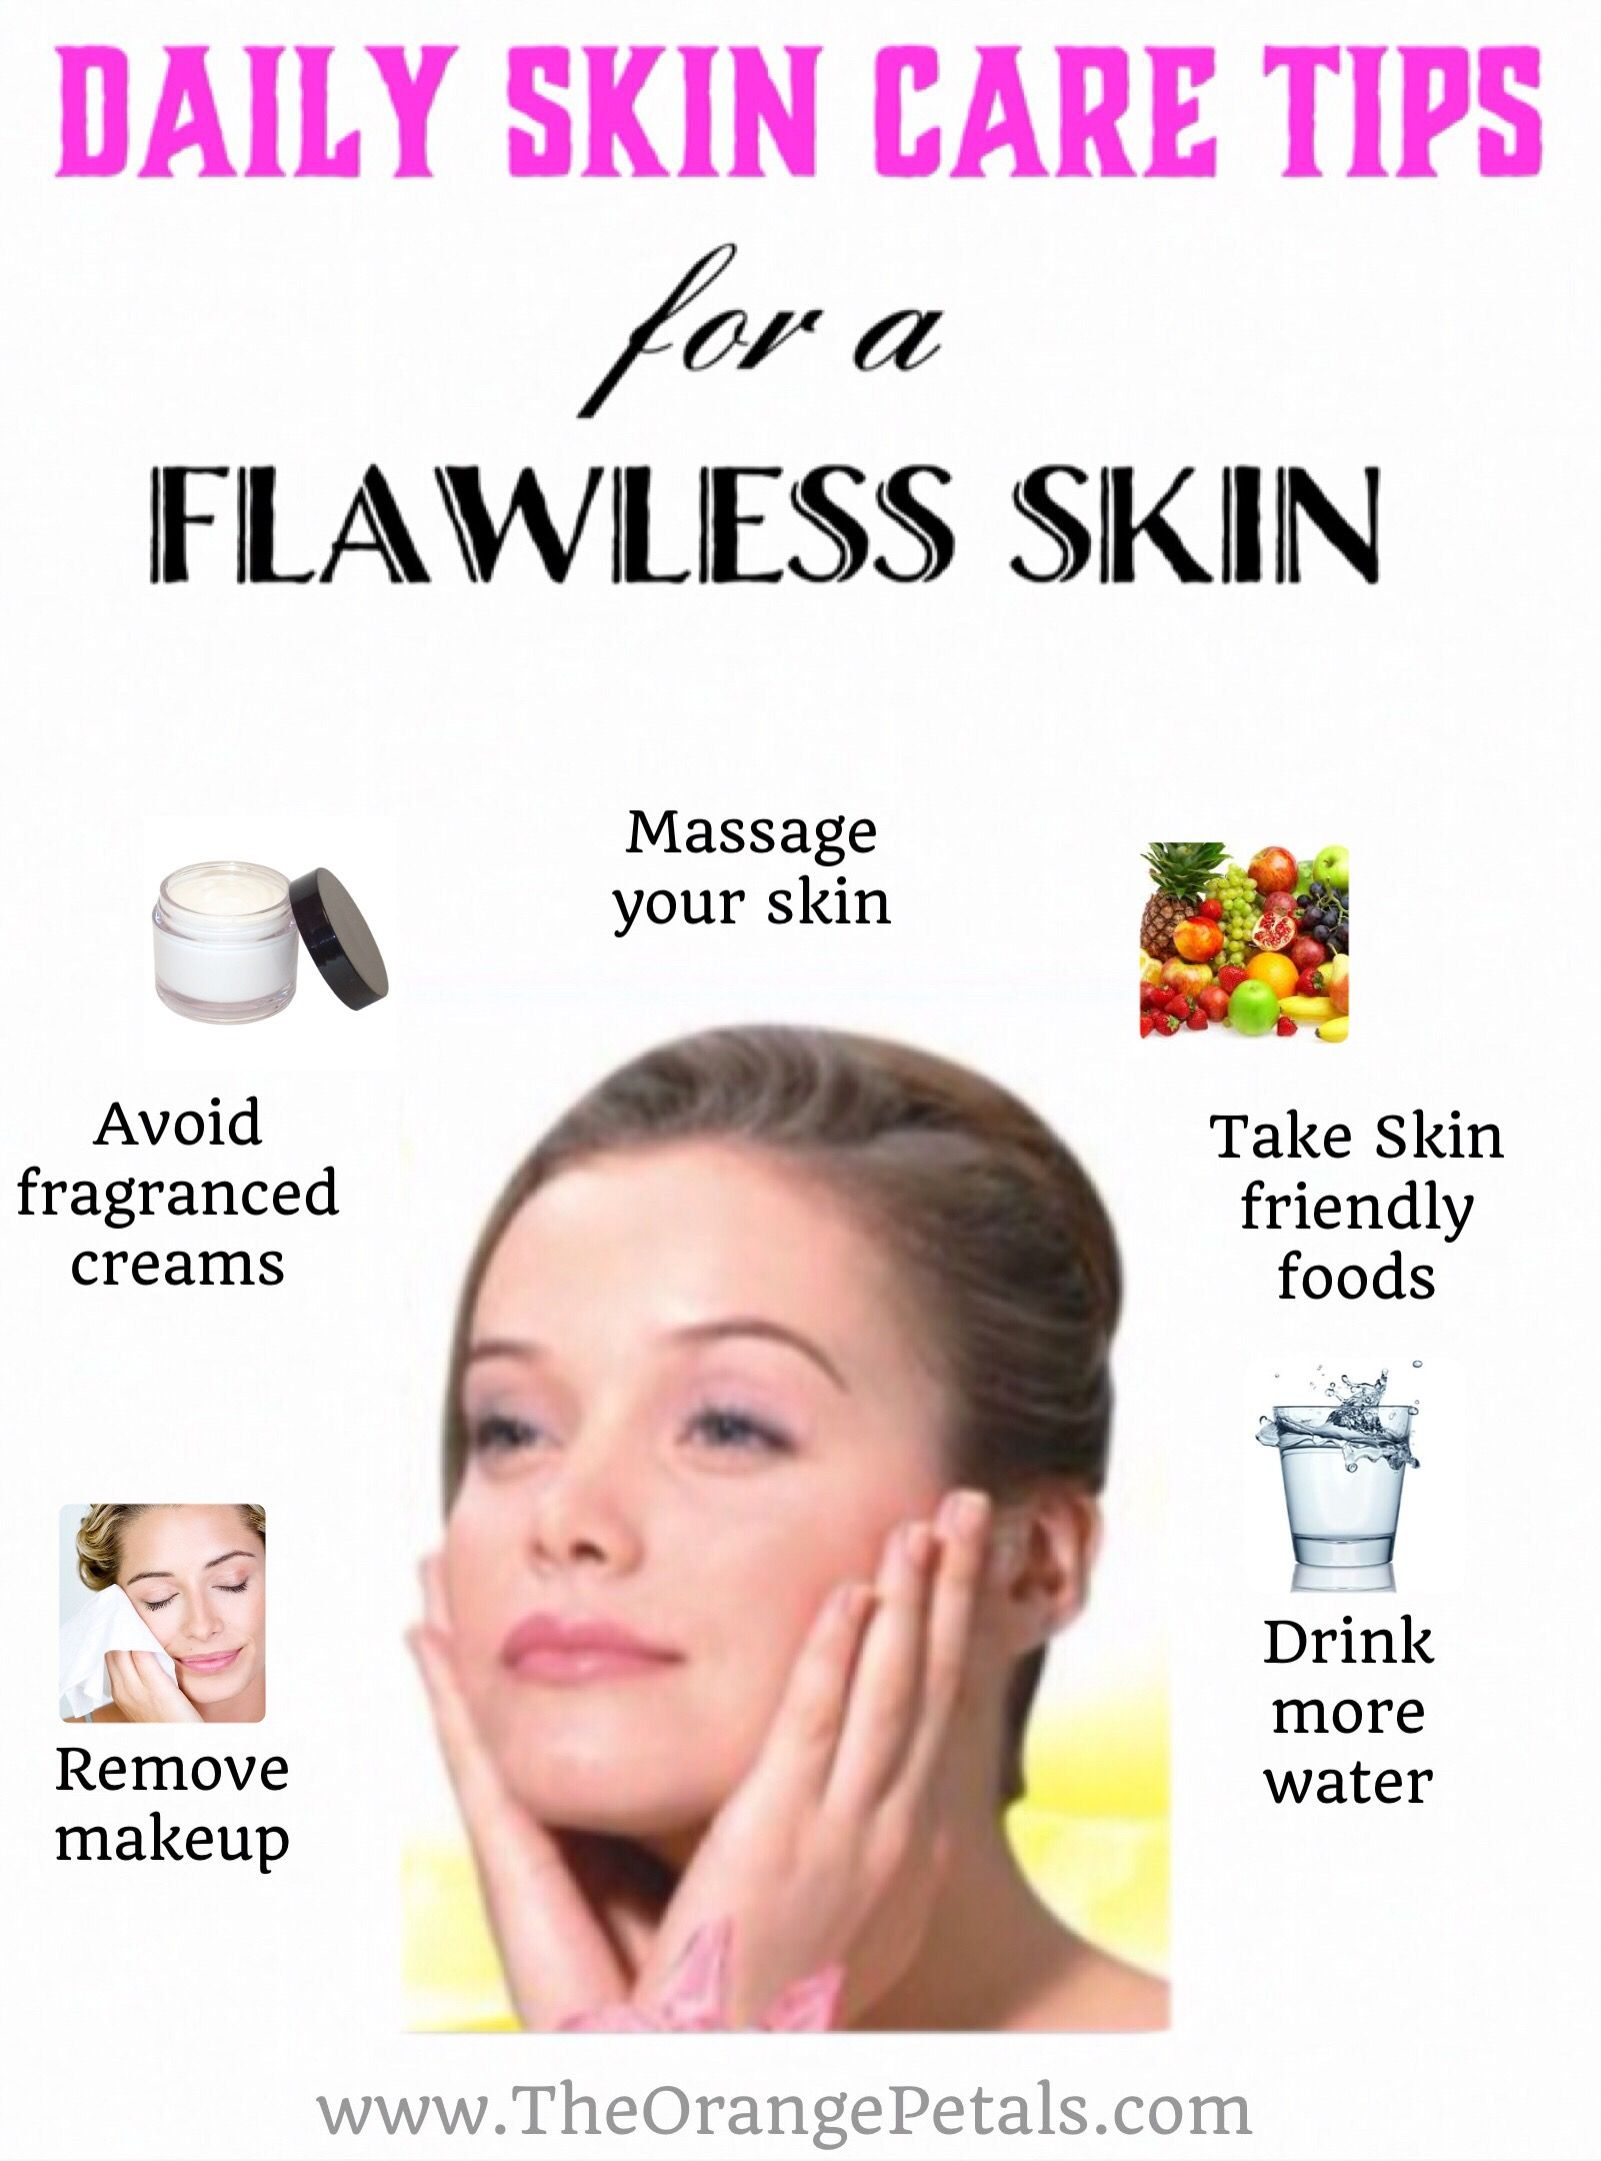 8 Daily skin care tips for a flawless skin and face